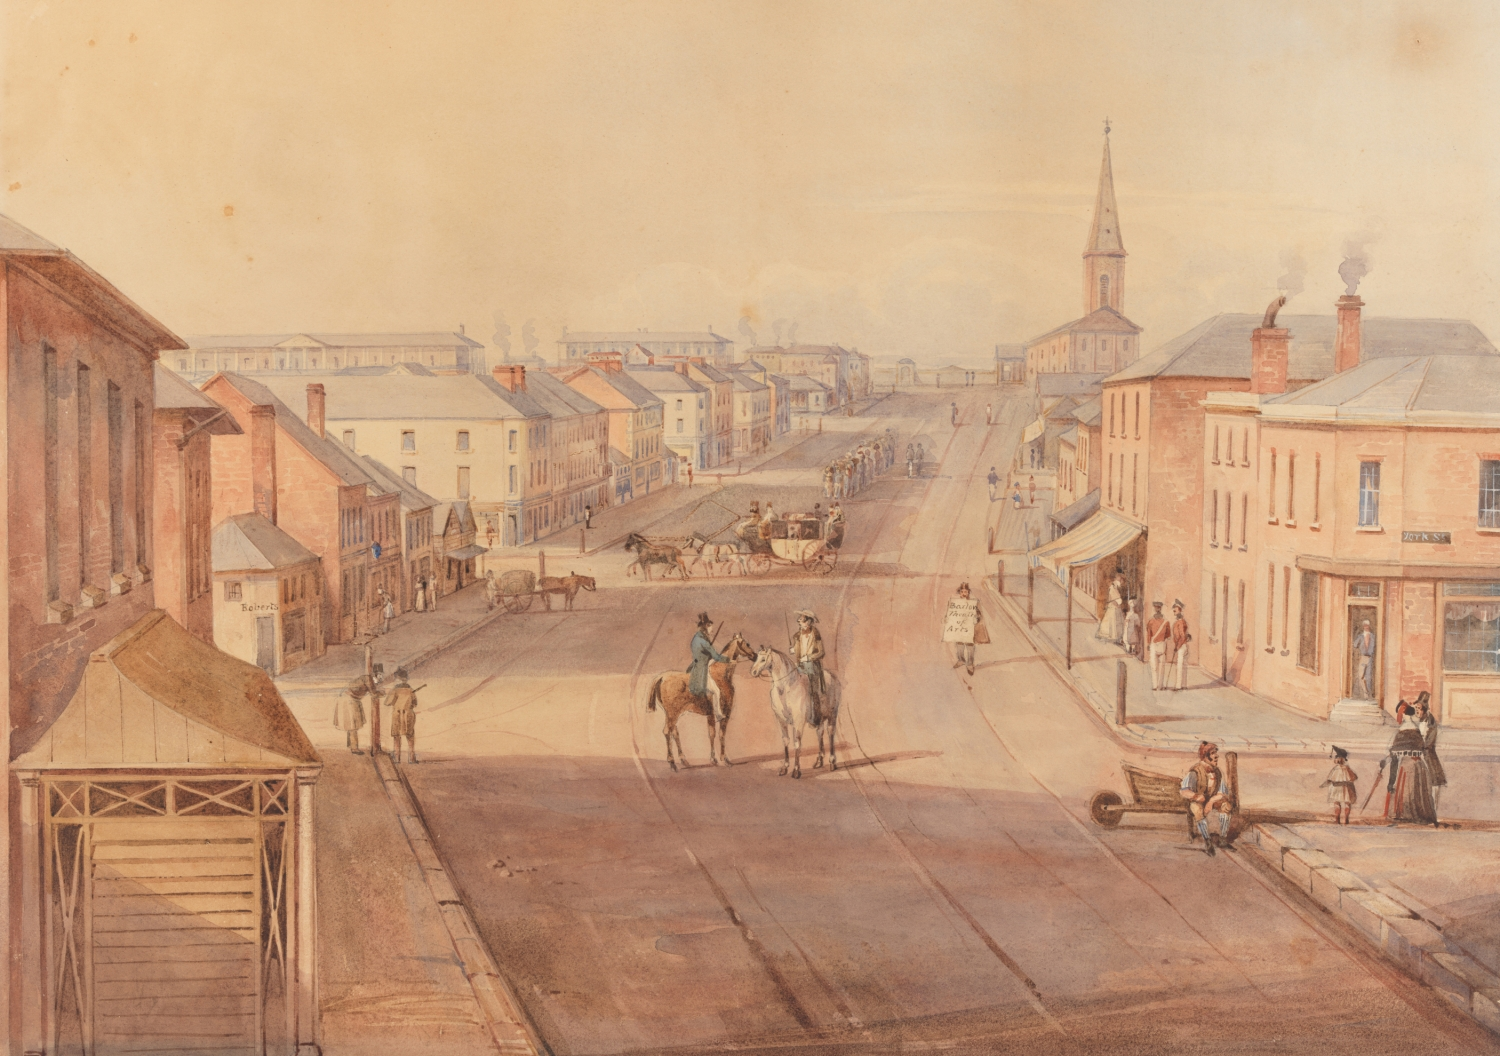 Watercolour painting of streetscape with barracks and church in distance.